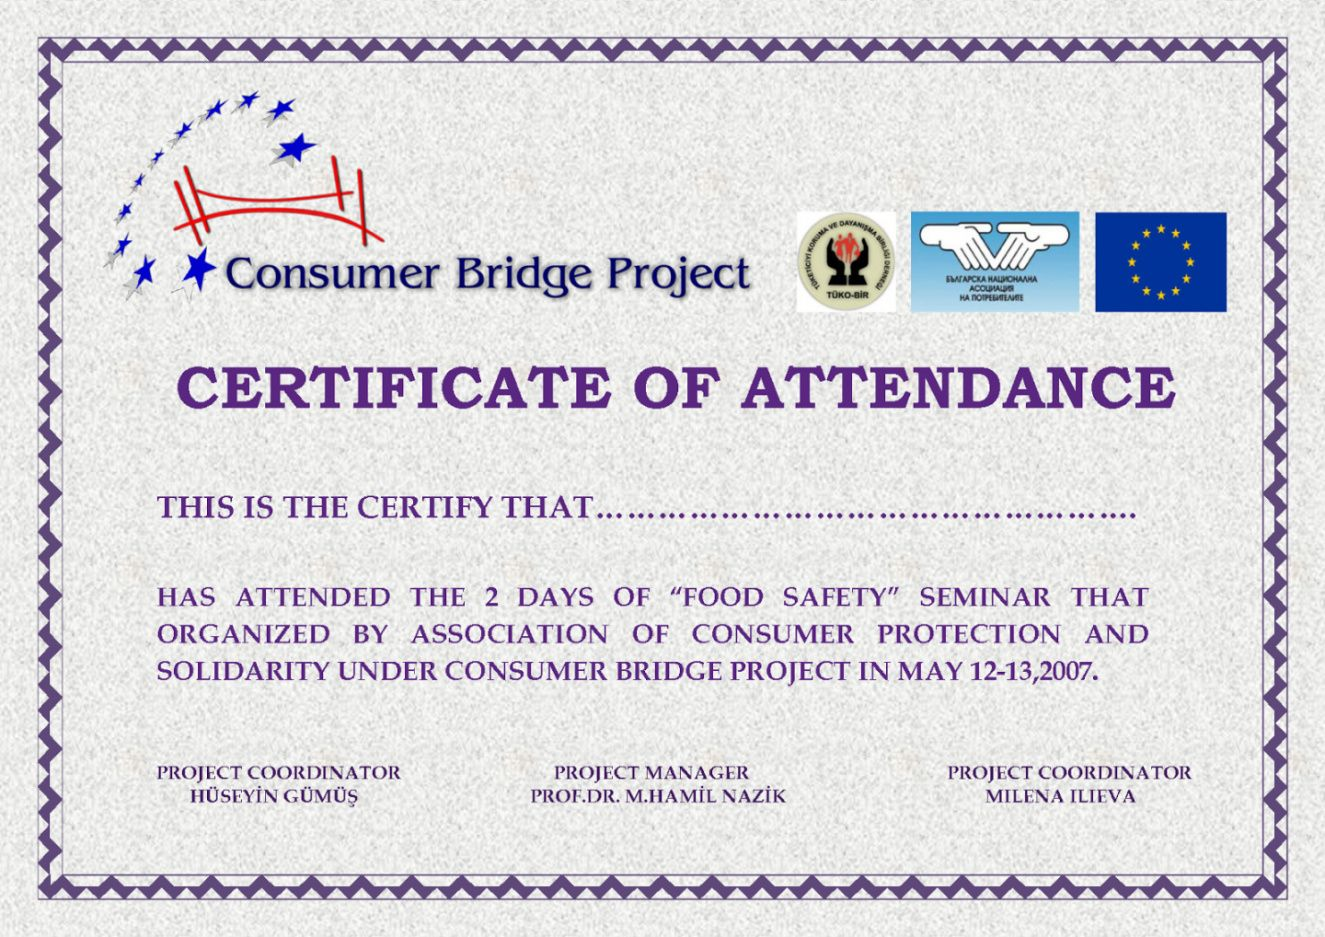 perfect attendance certificate templates free download dtemplates certificate of perfect attendance template sample